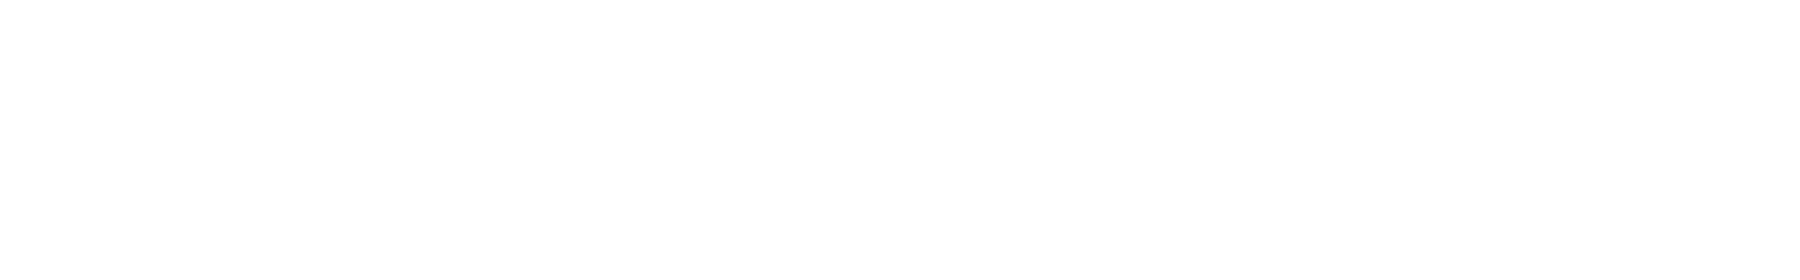 minusoclock synth